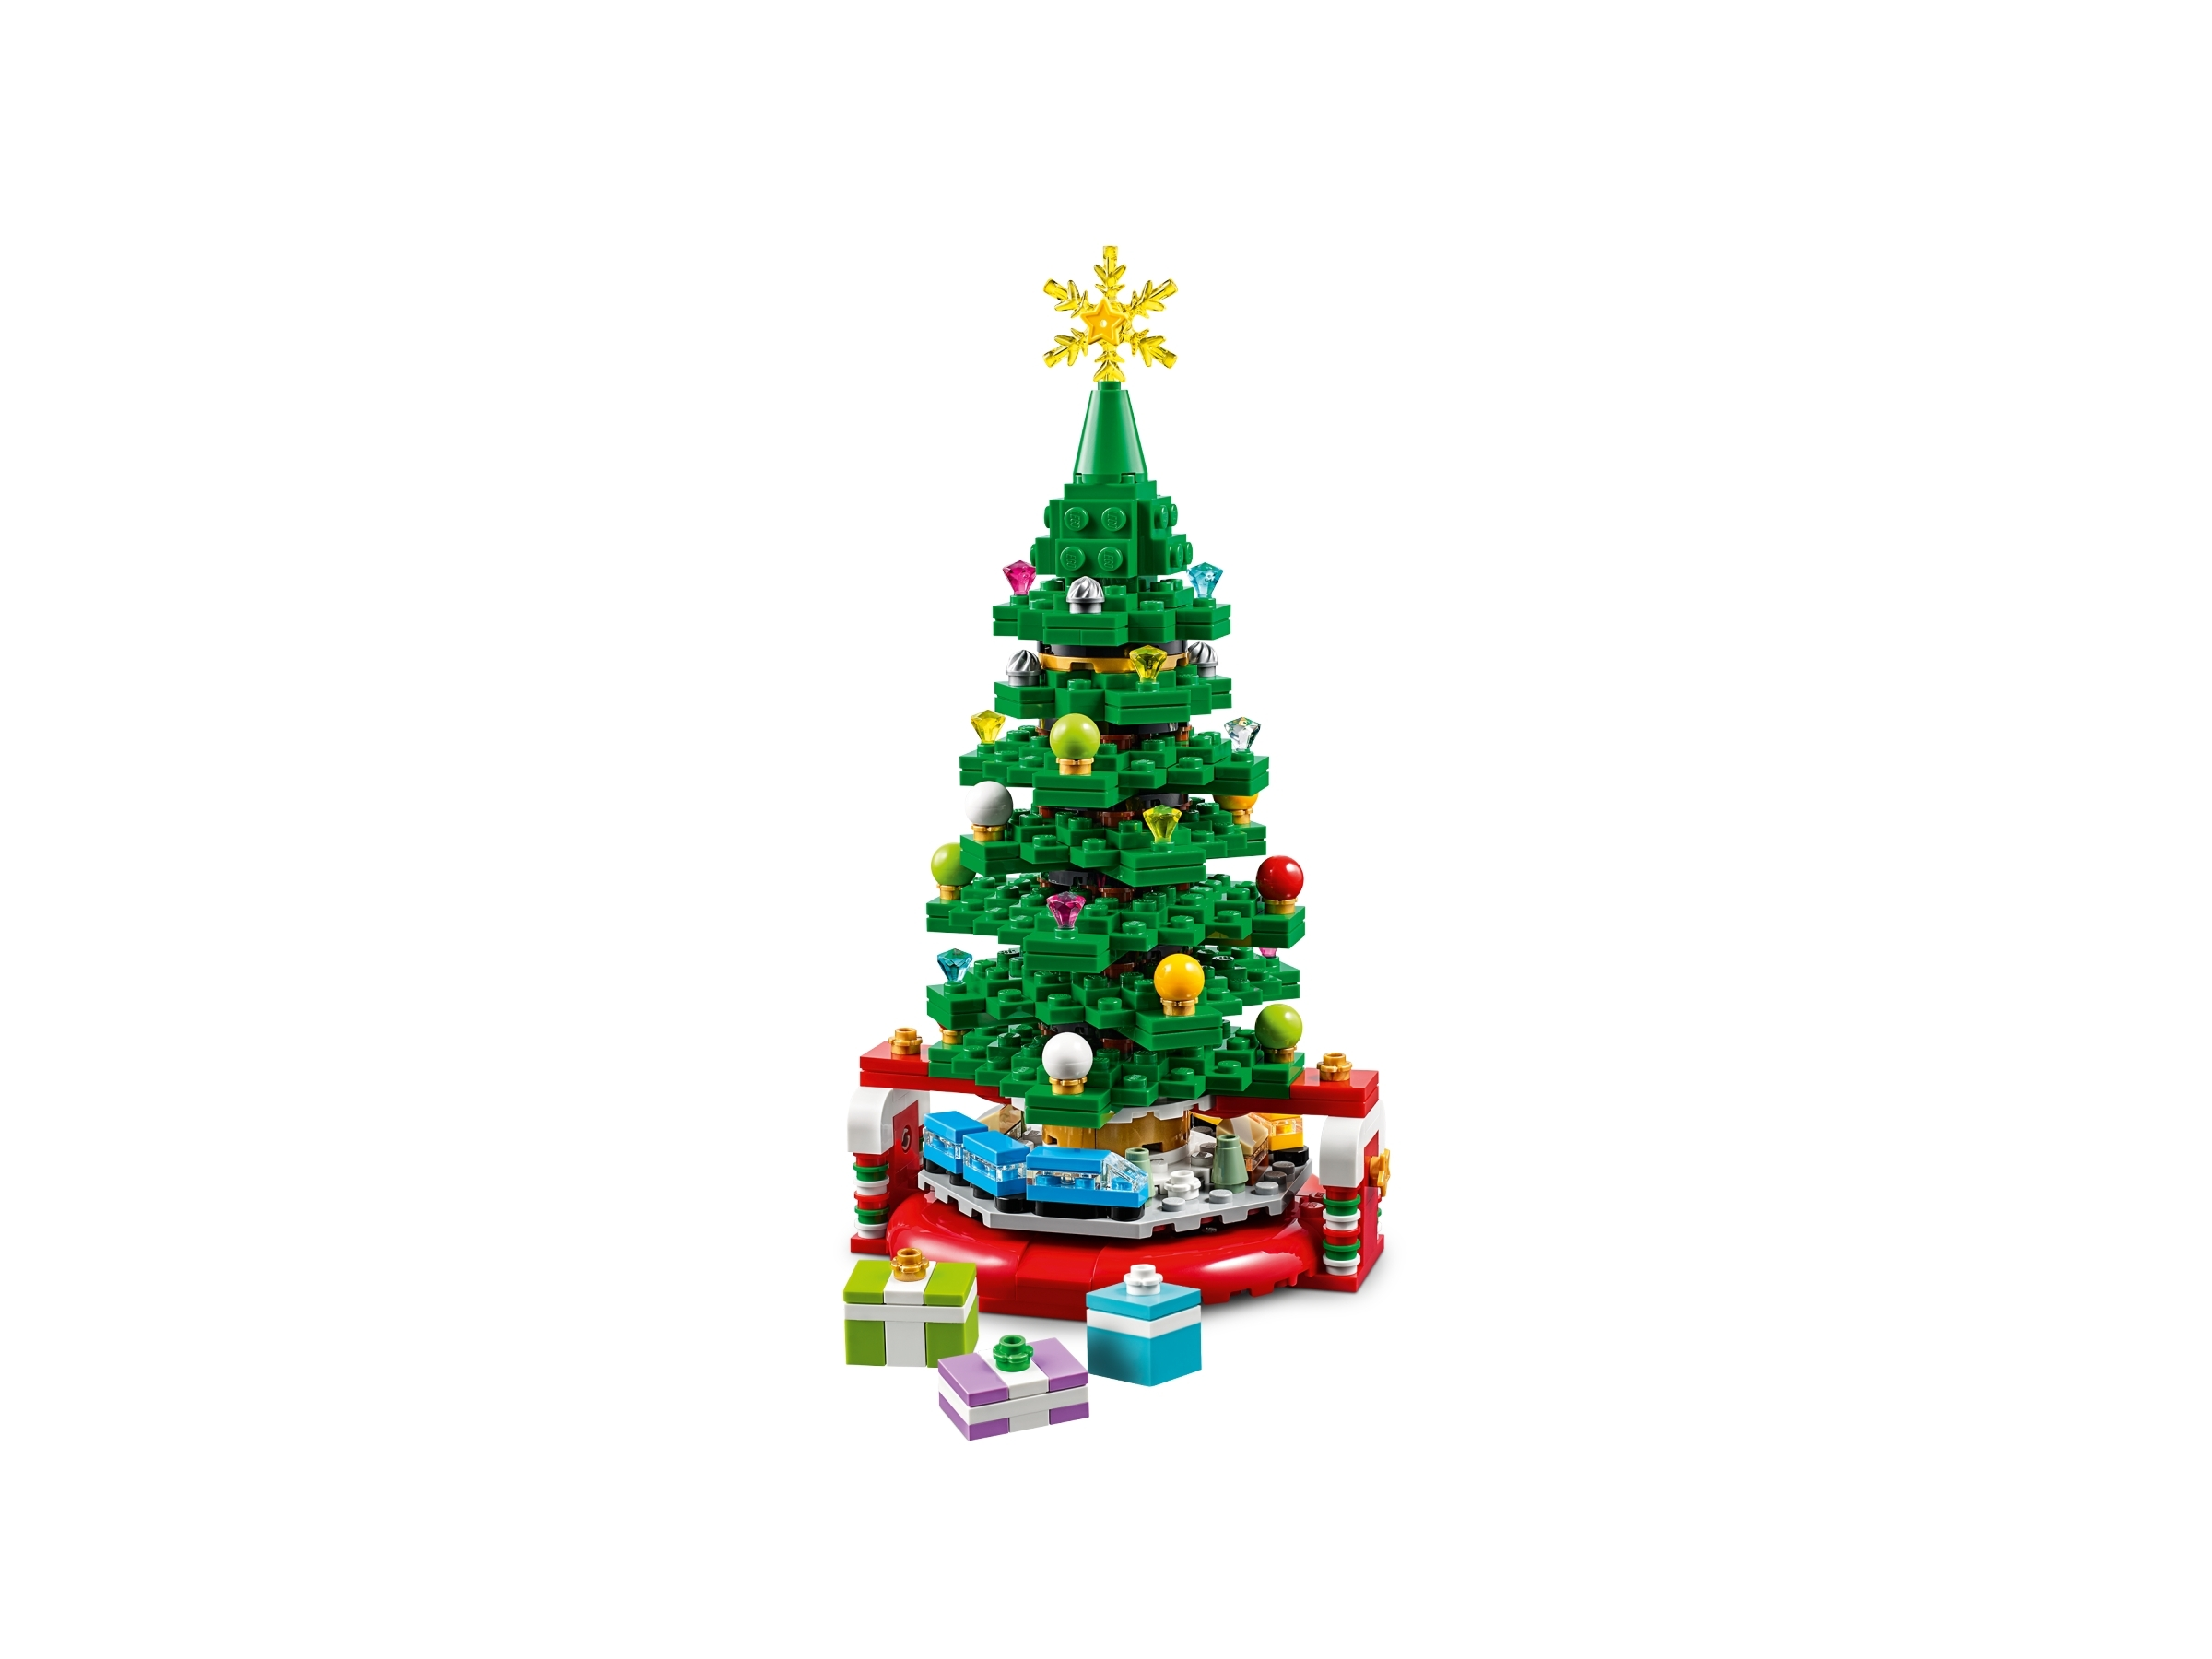 LEGO Presents Xmas Christmas Tree with Gift Boxes and presents NEW